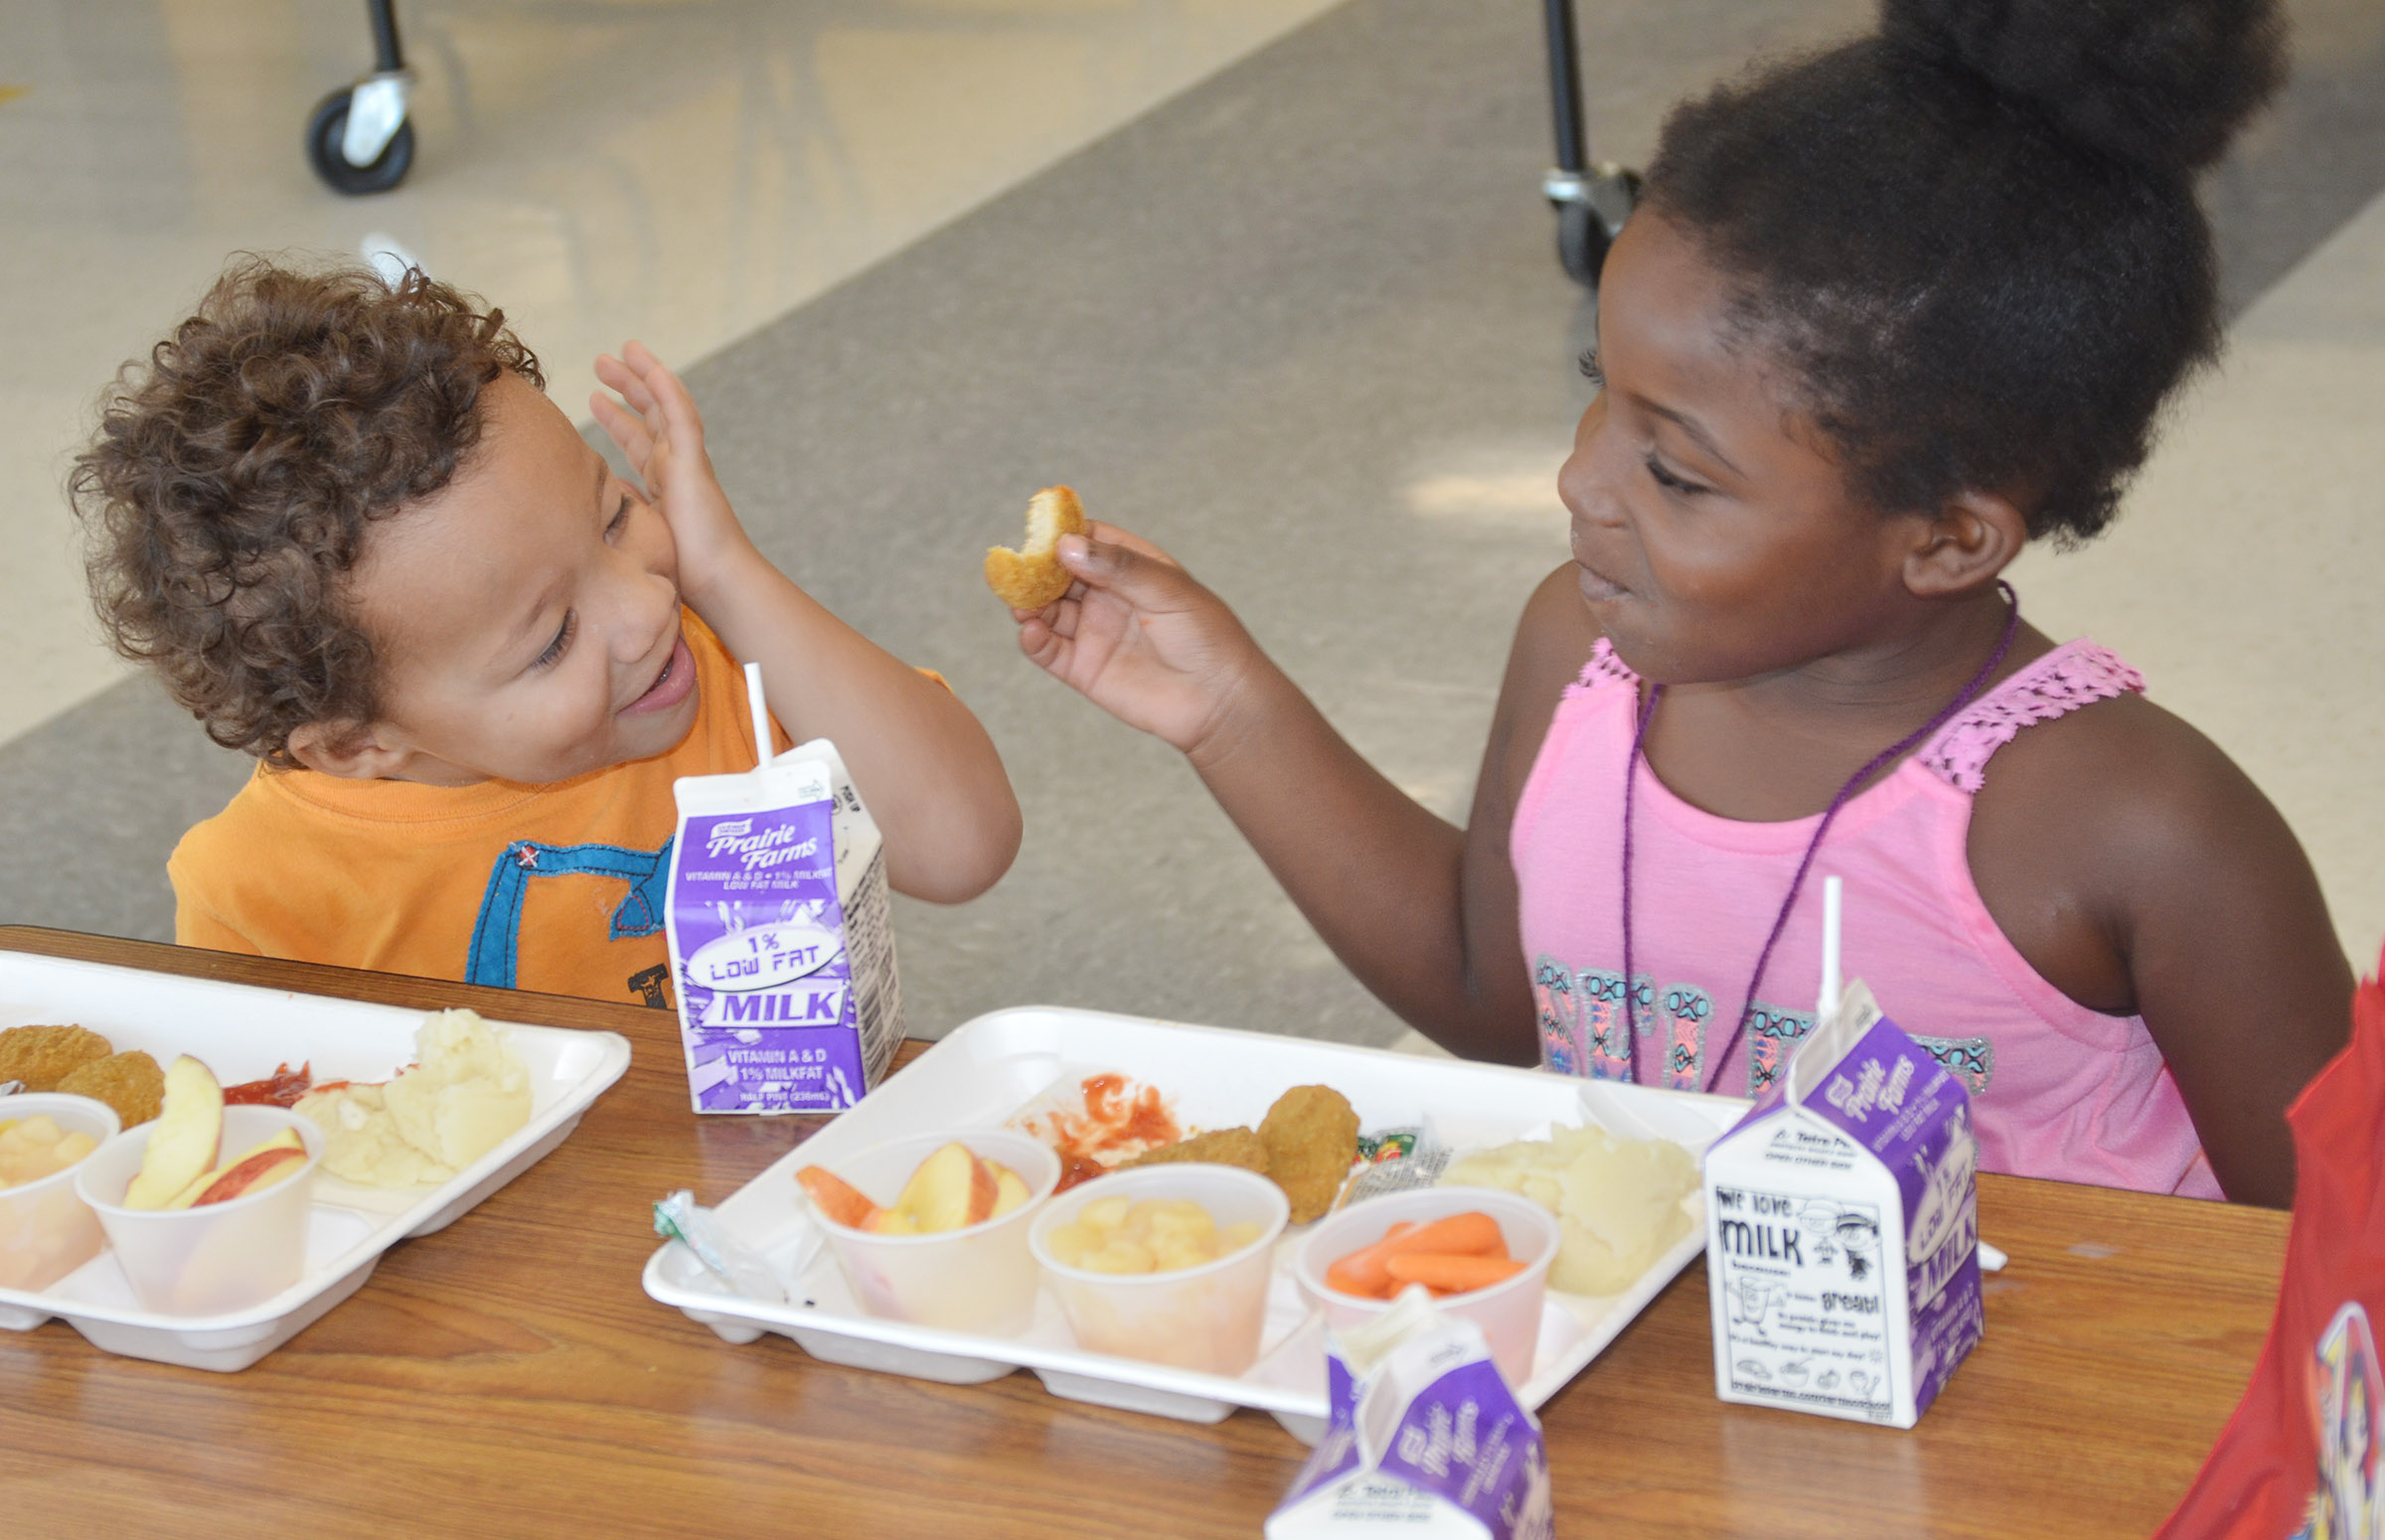 CES preschool students Ace Turner, at left, and Harmony Brown talk as they eat lunch together.